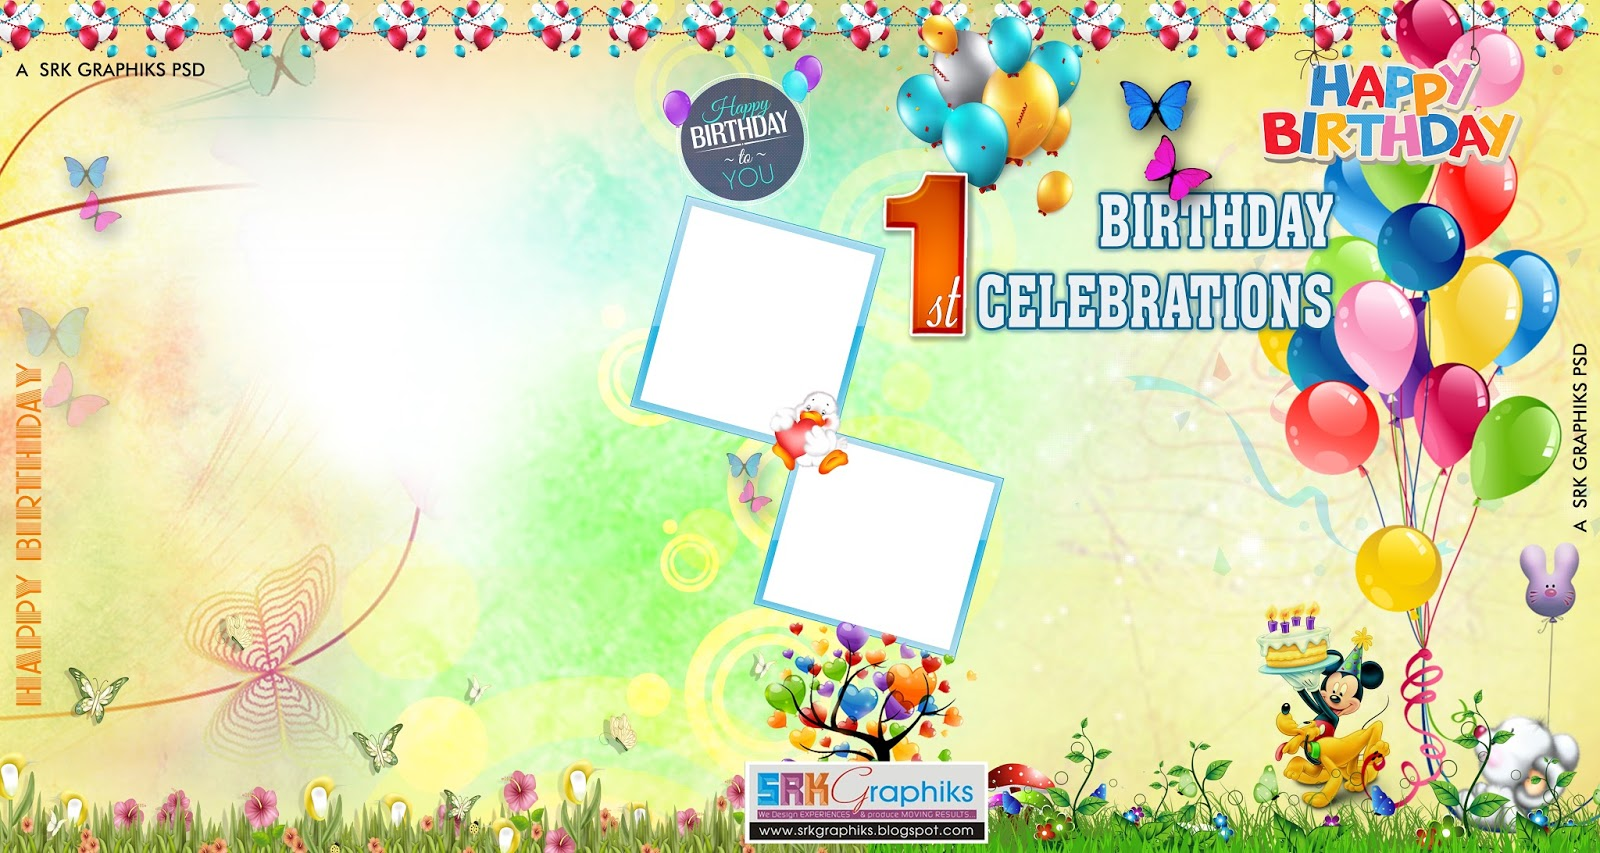 background design for birthday banner image gallery  hcpr